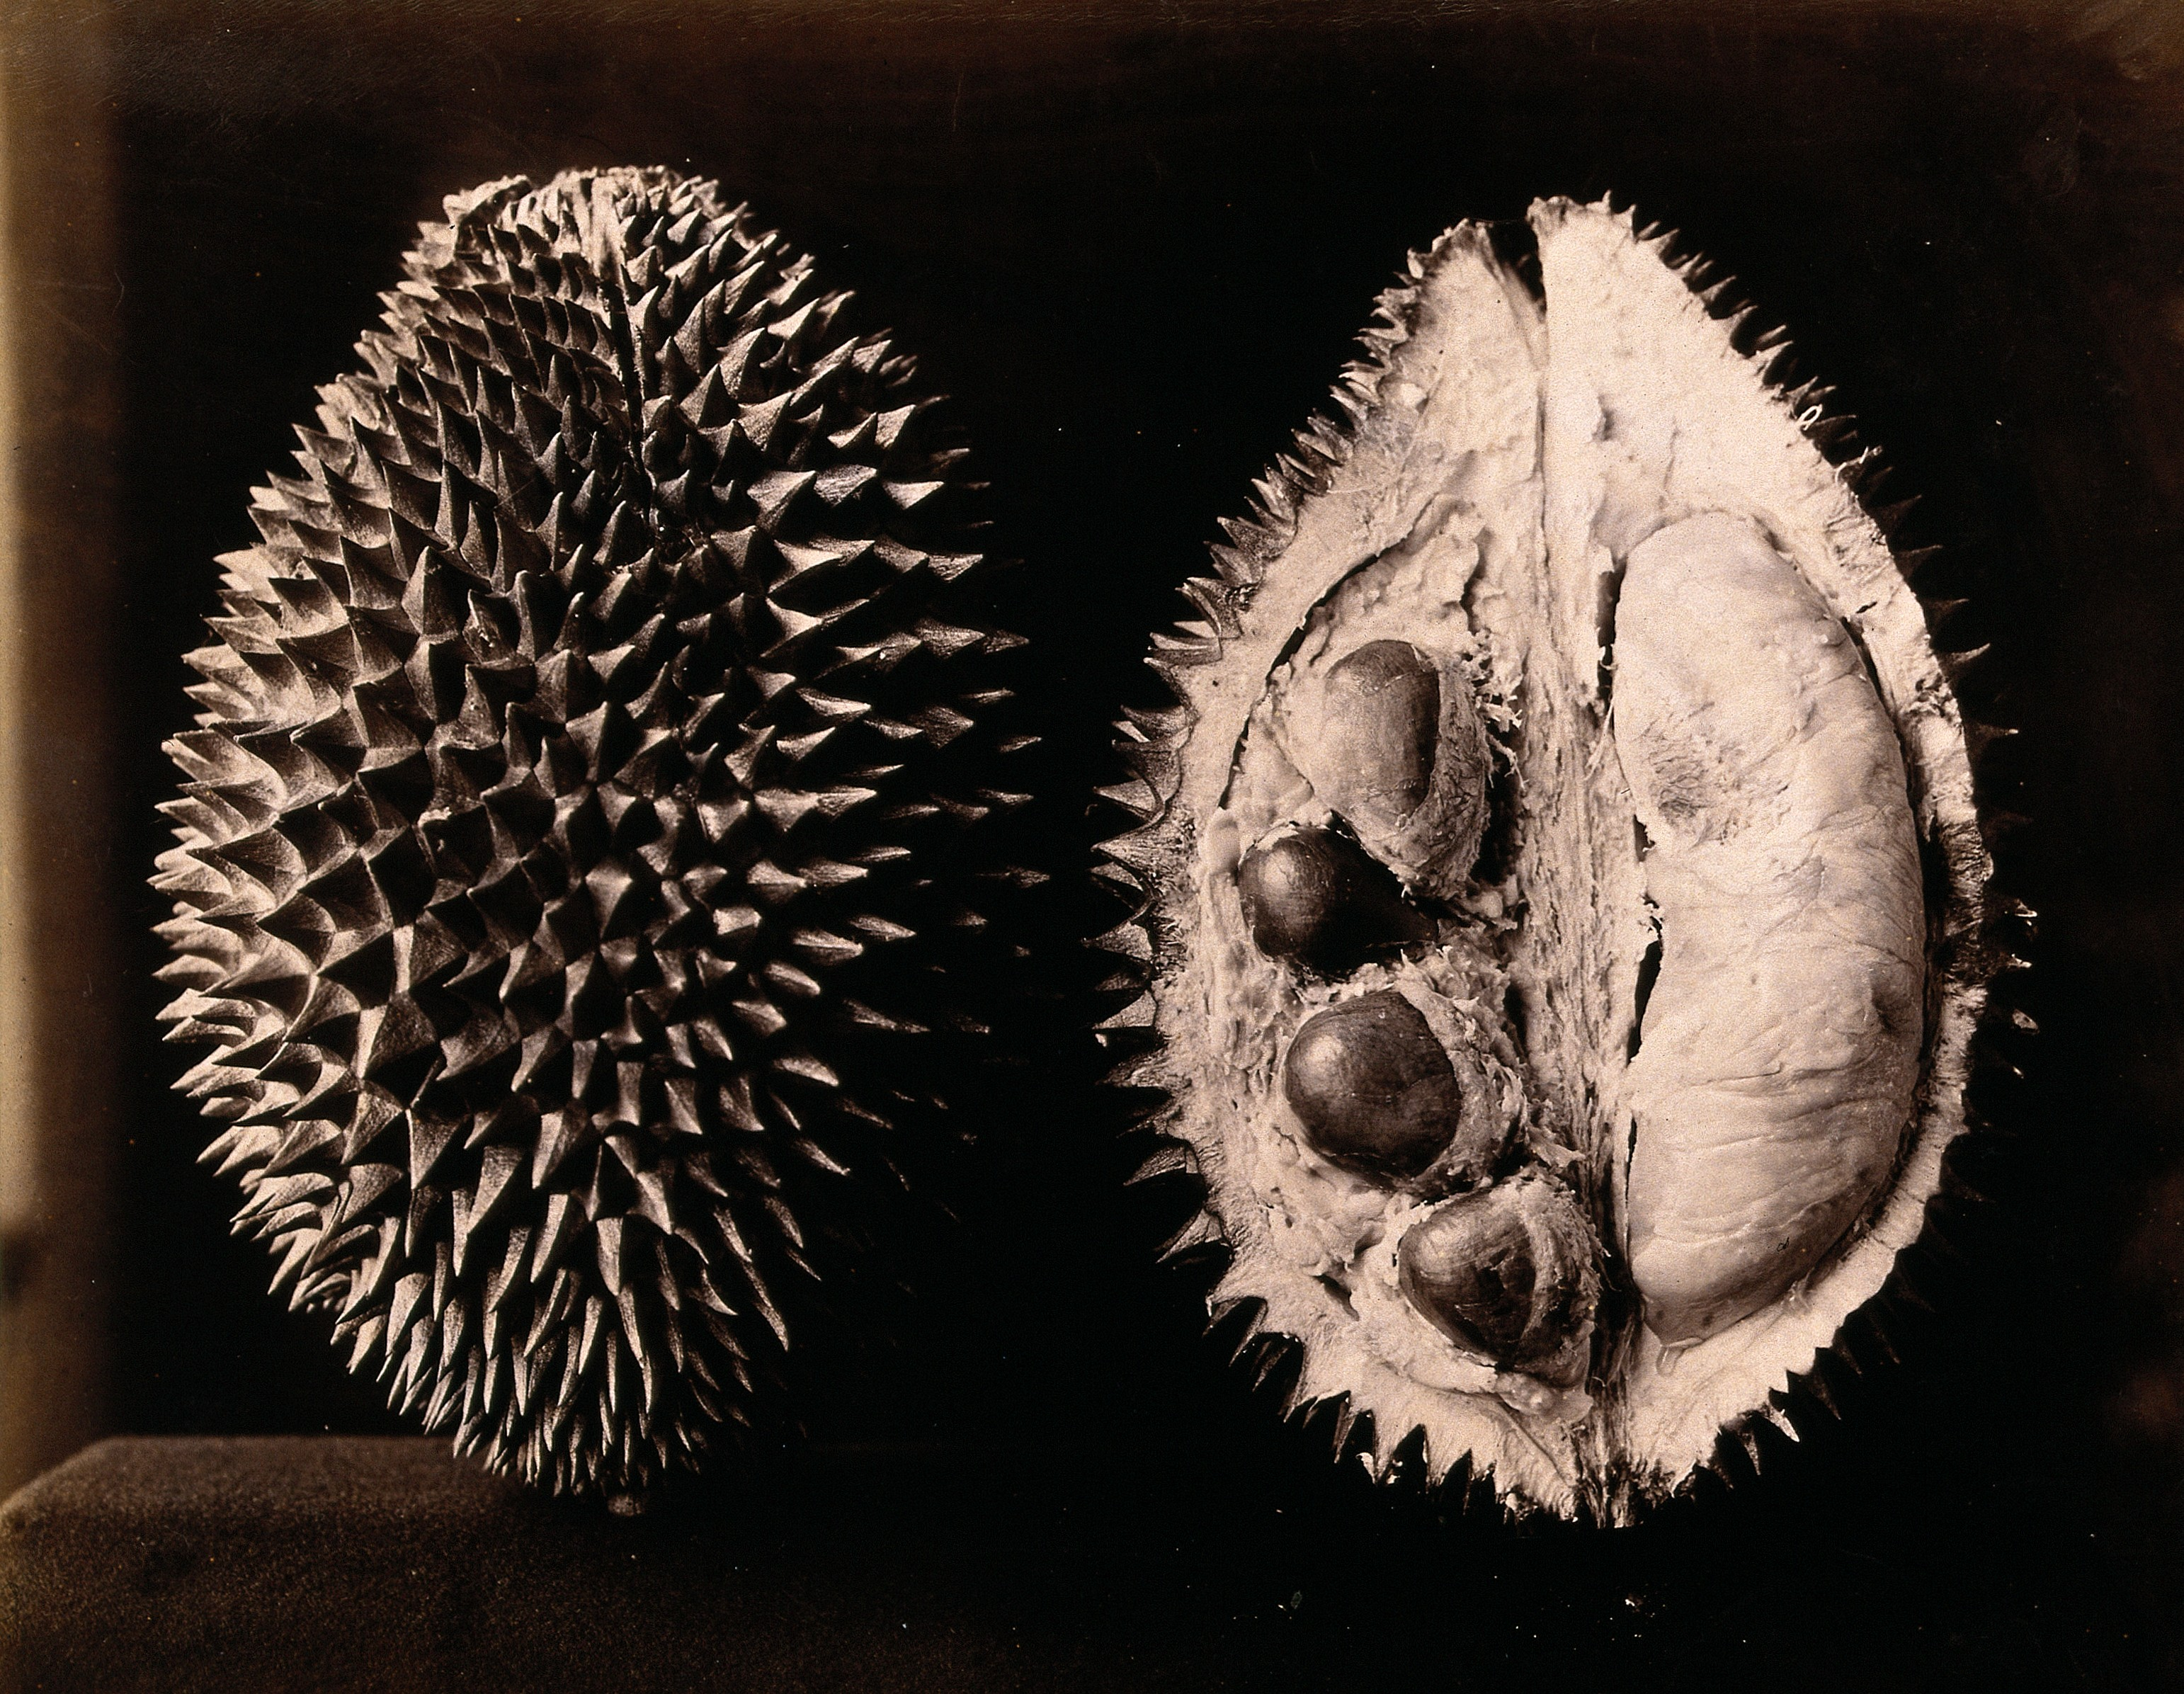 Filea Durian Durio Zibethinus An Entire And Sectioned